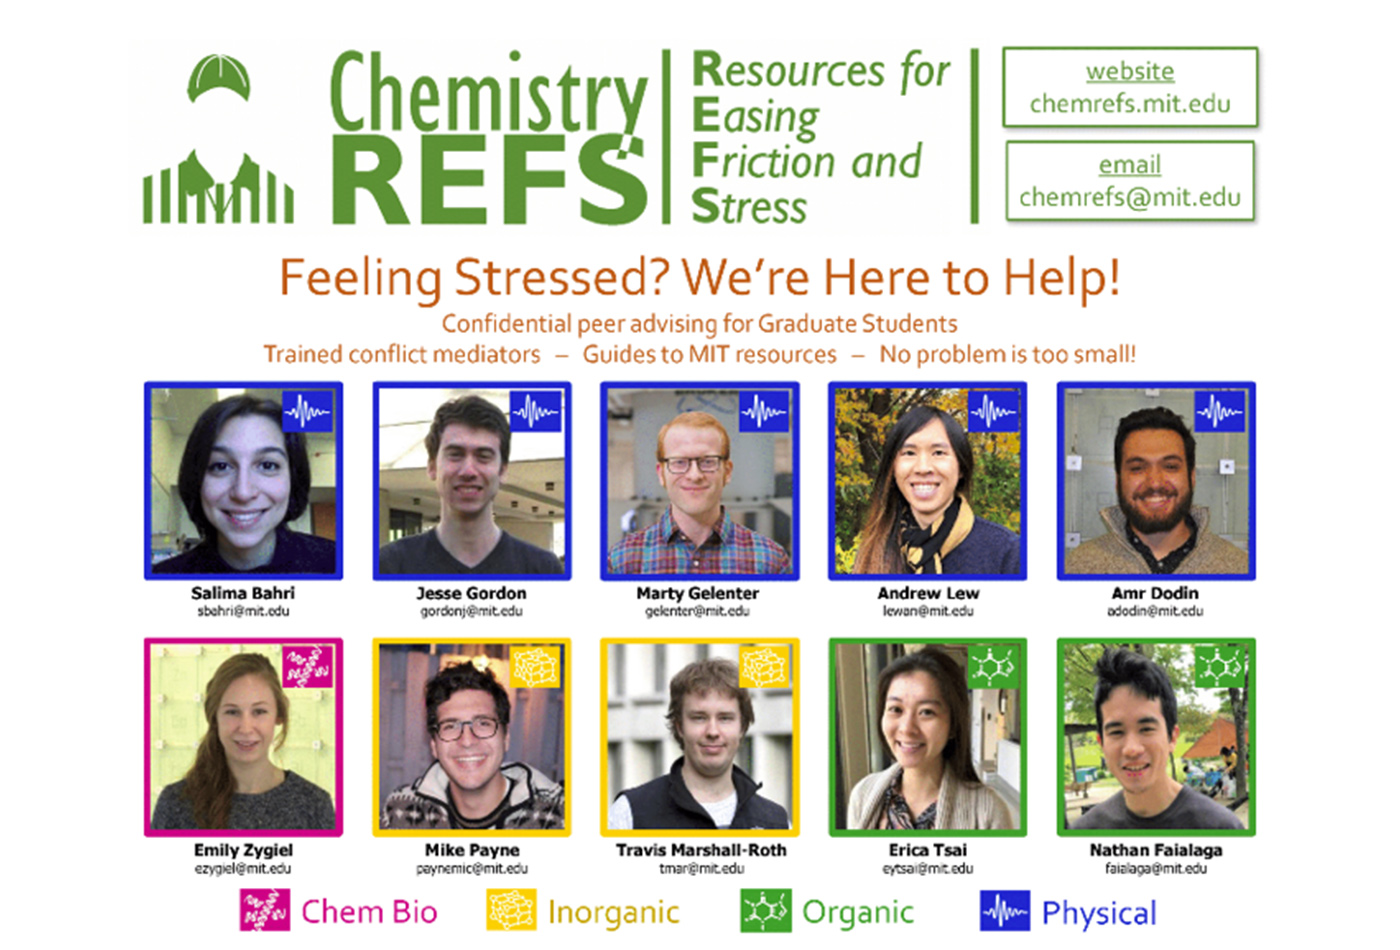 A graphic depicts the members of Chem REFs and their contact informaton, as well as the group's logo, email address, and website.